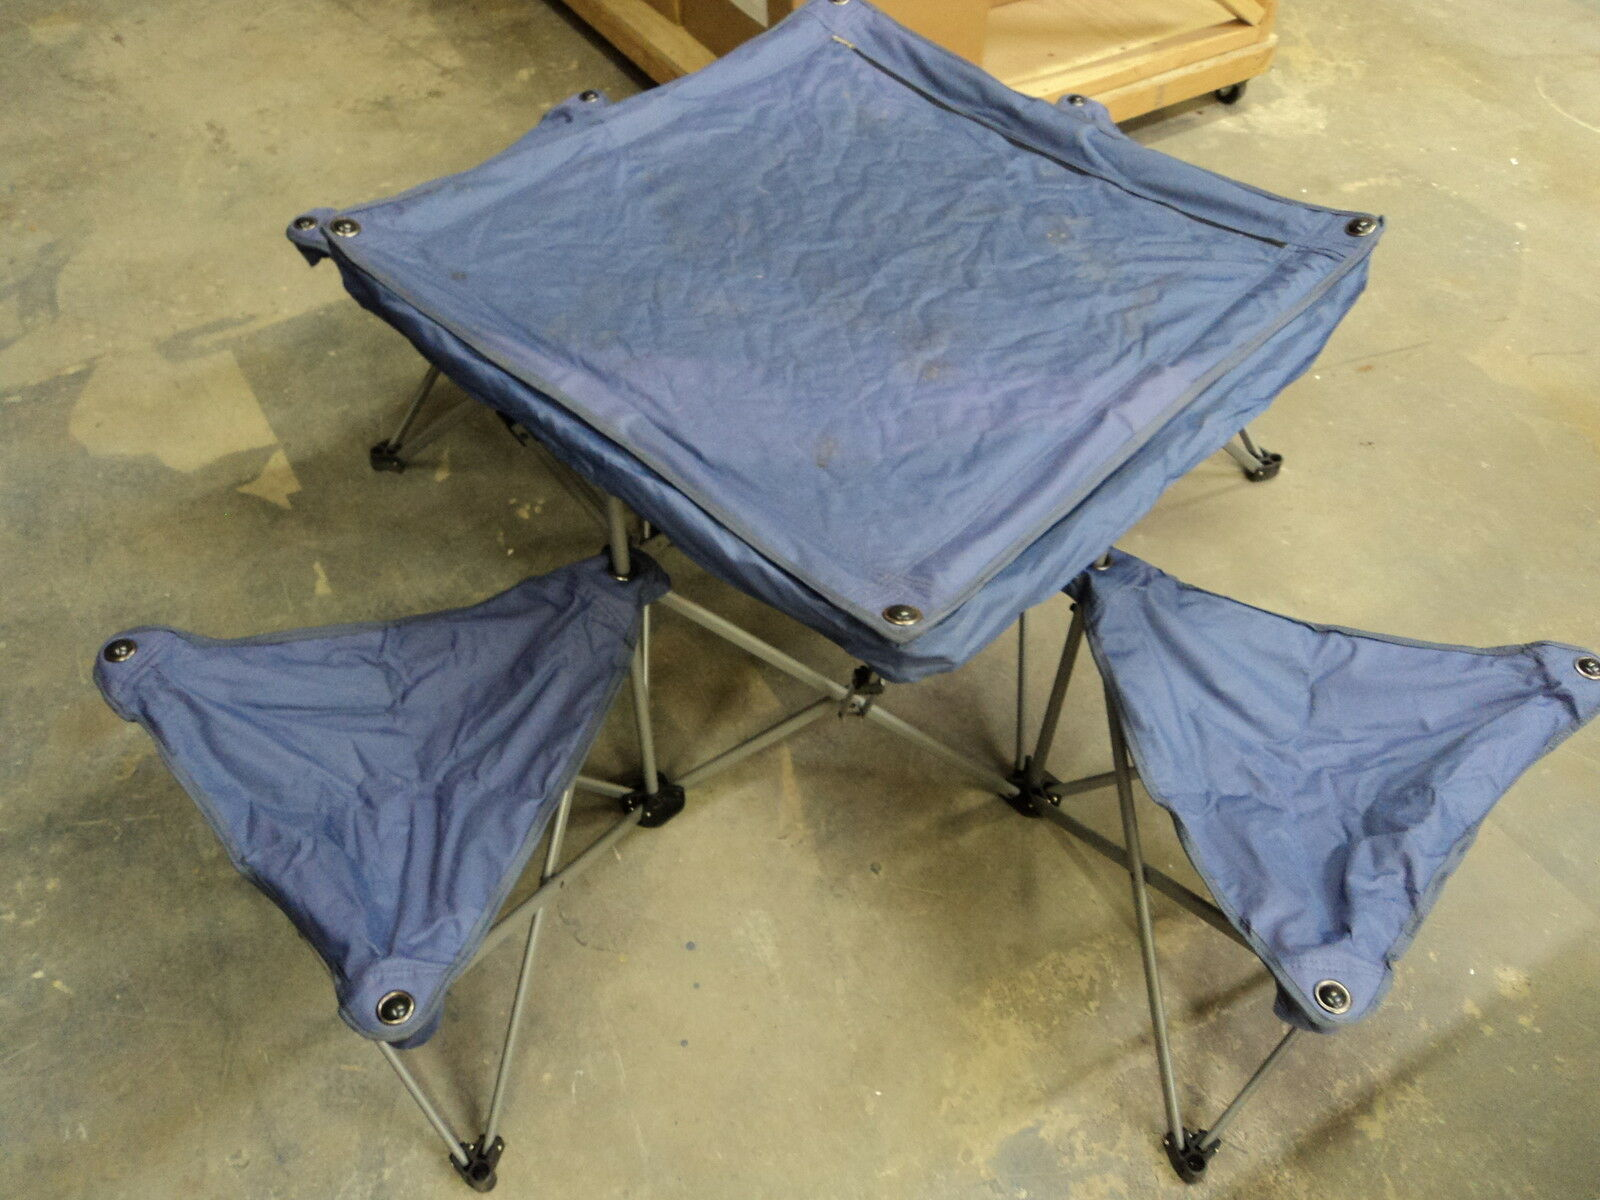 Northpole Fold Out Camping Table 4  Chairs 50in L x 50in W x 24in H Purple  80% off